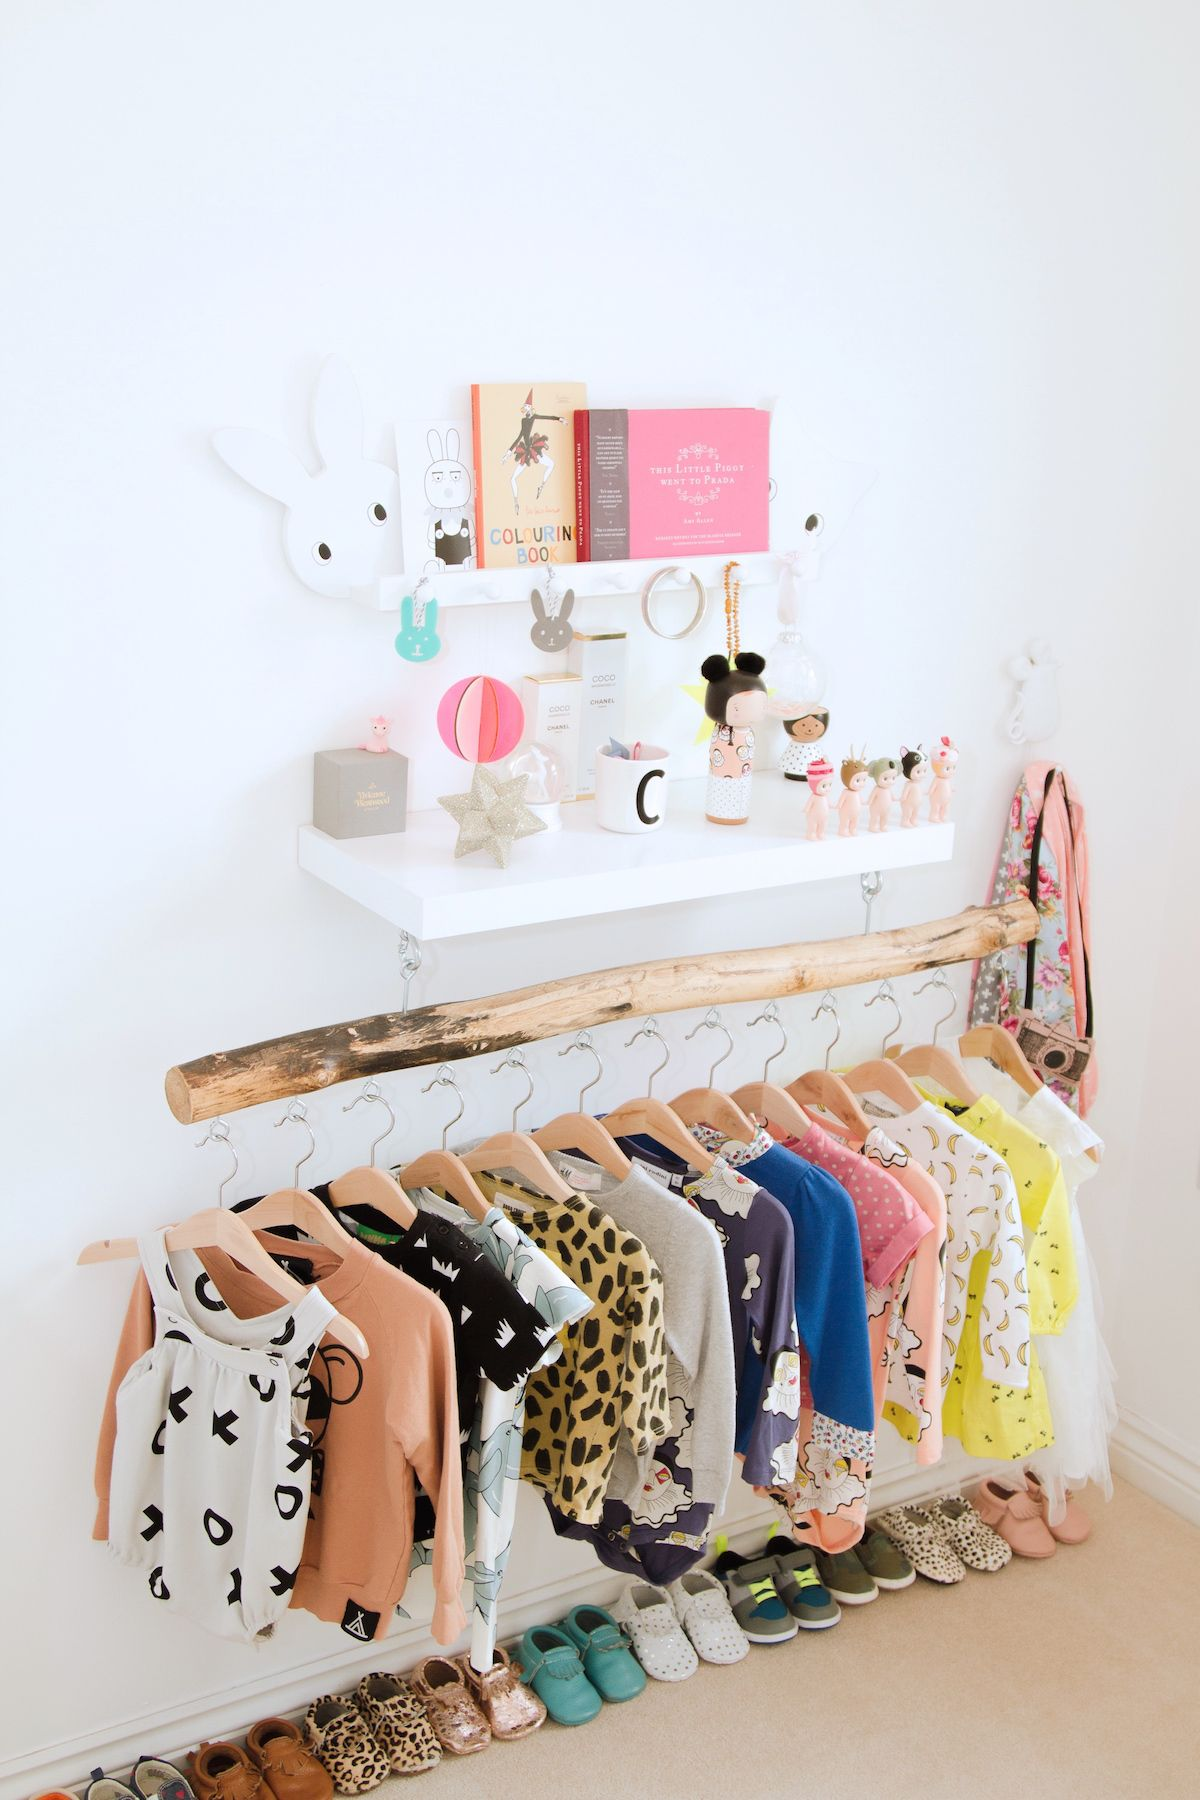 popular wardrobe kids pics amazing homemade styles for and ideas garment idea home design rack urban clothes concept u rolling of athelred outfitters best